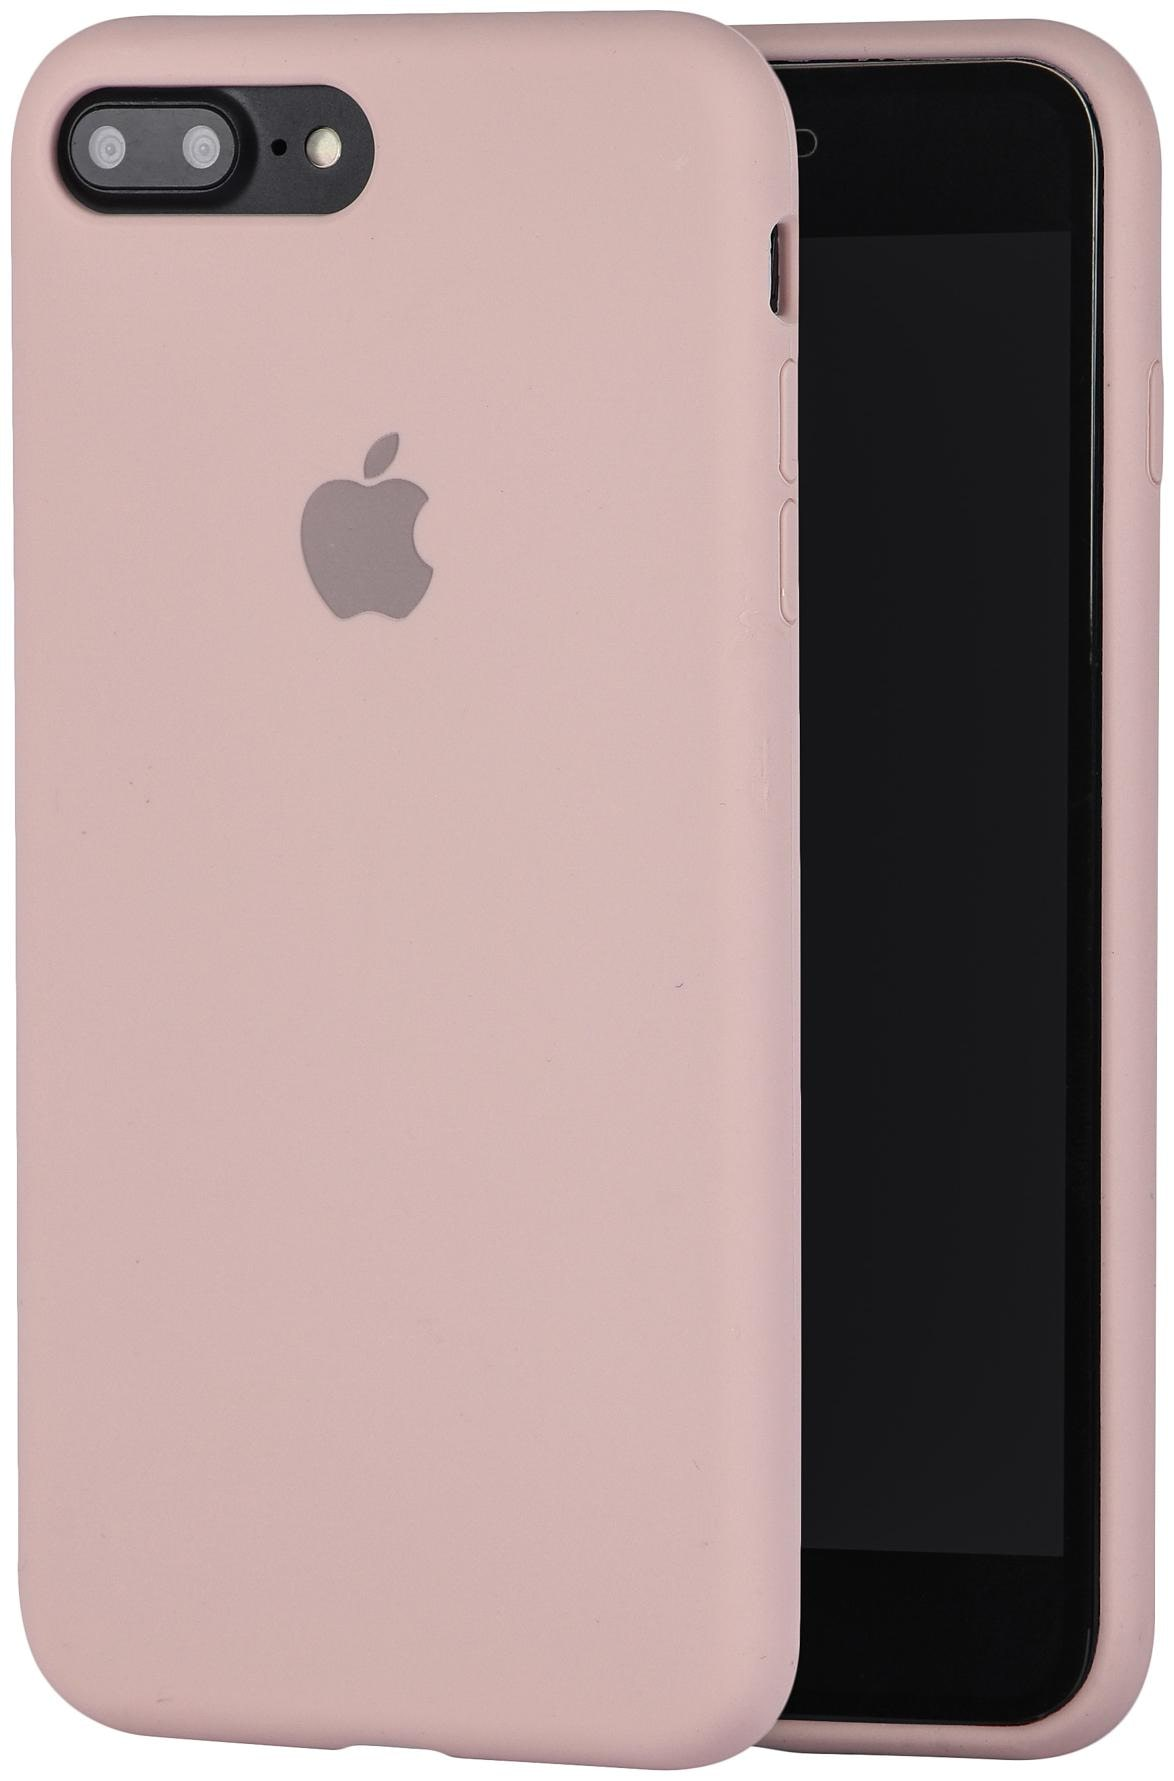 LIRAMARK Silicone Back Cover For Apple iPhone 7 Plus   Apple iPhone 8 Plus   Pink   by B S Enterprises